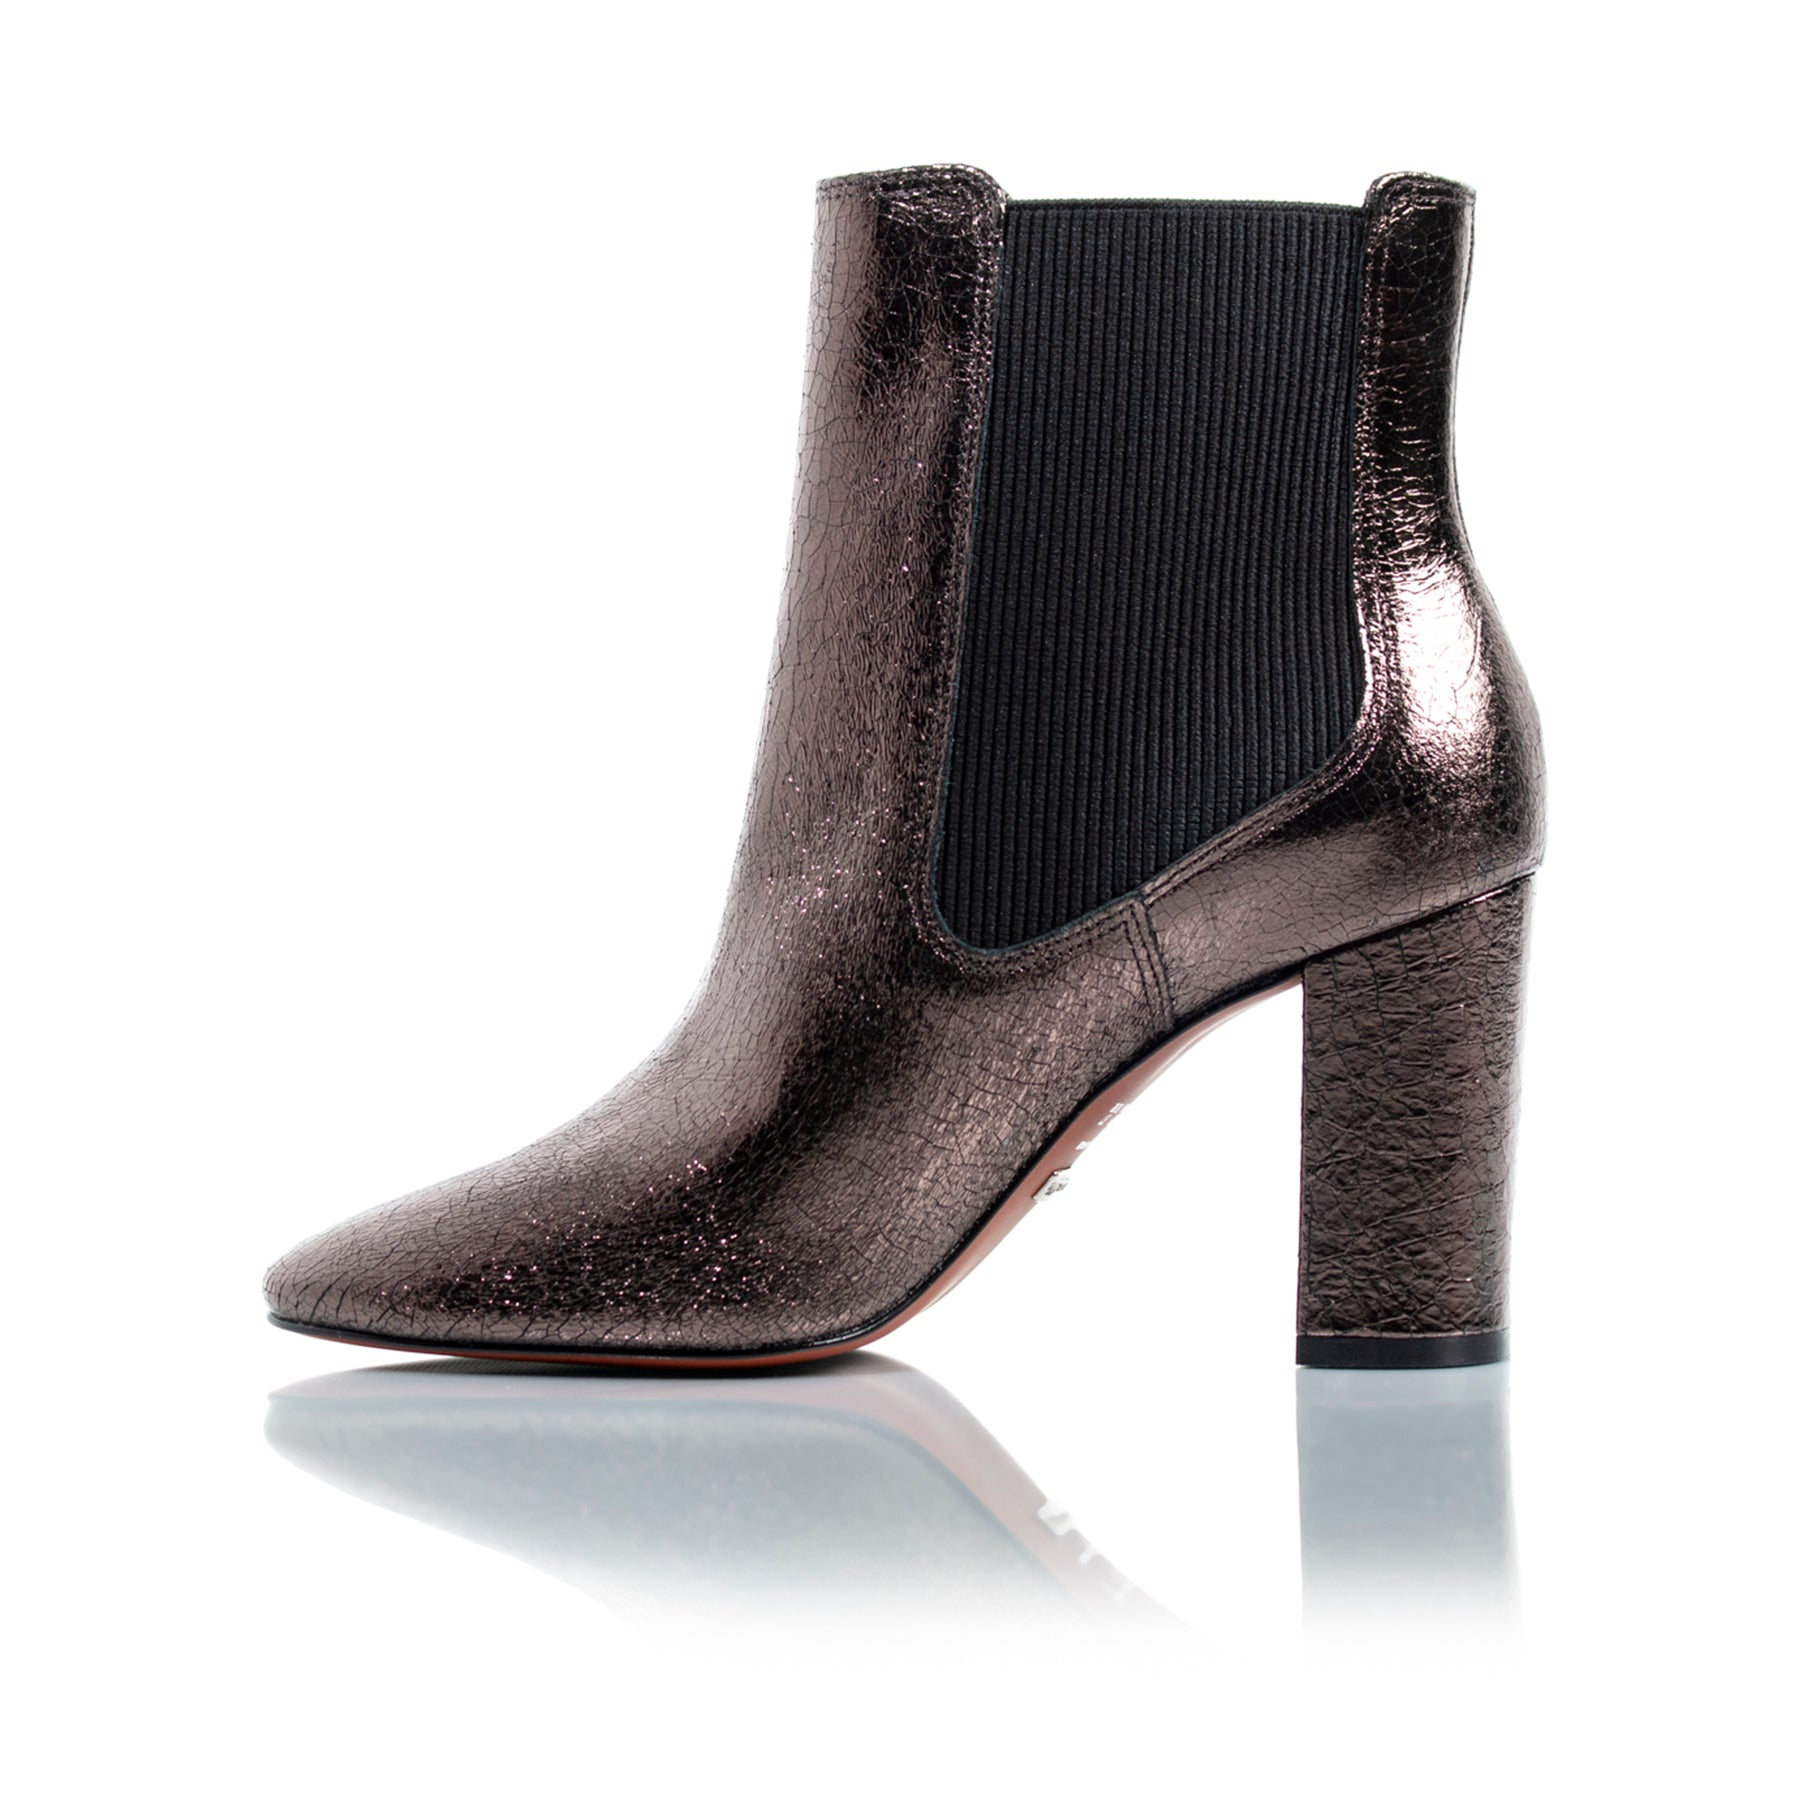 Mace Pewter Naplack Ankle Boots